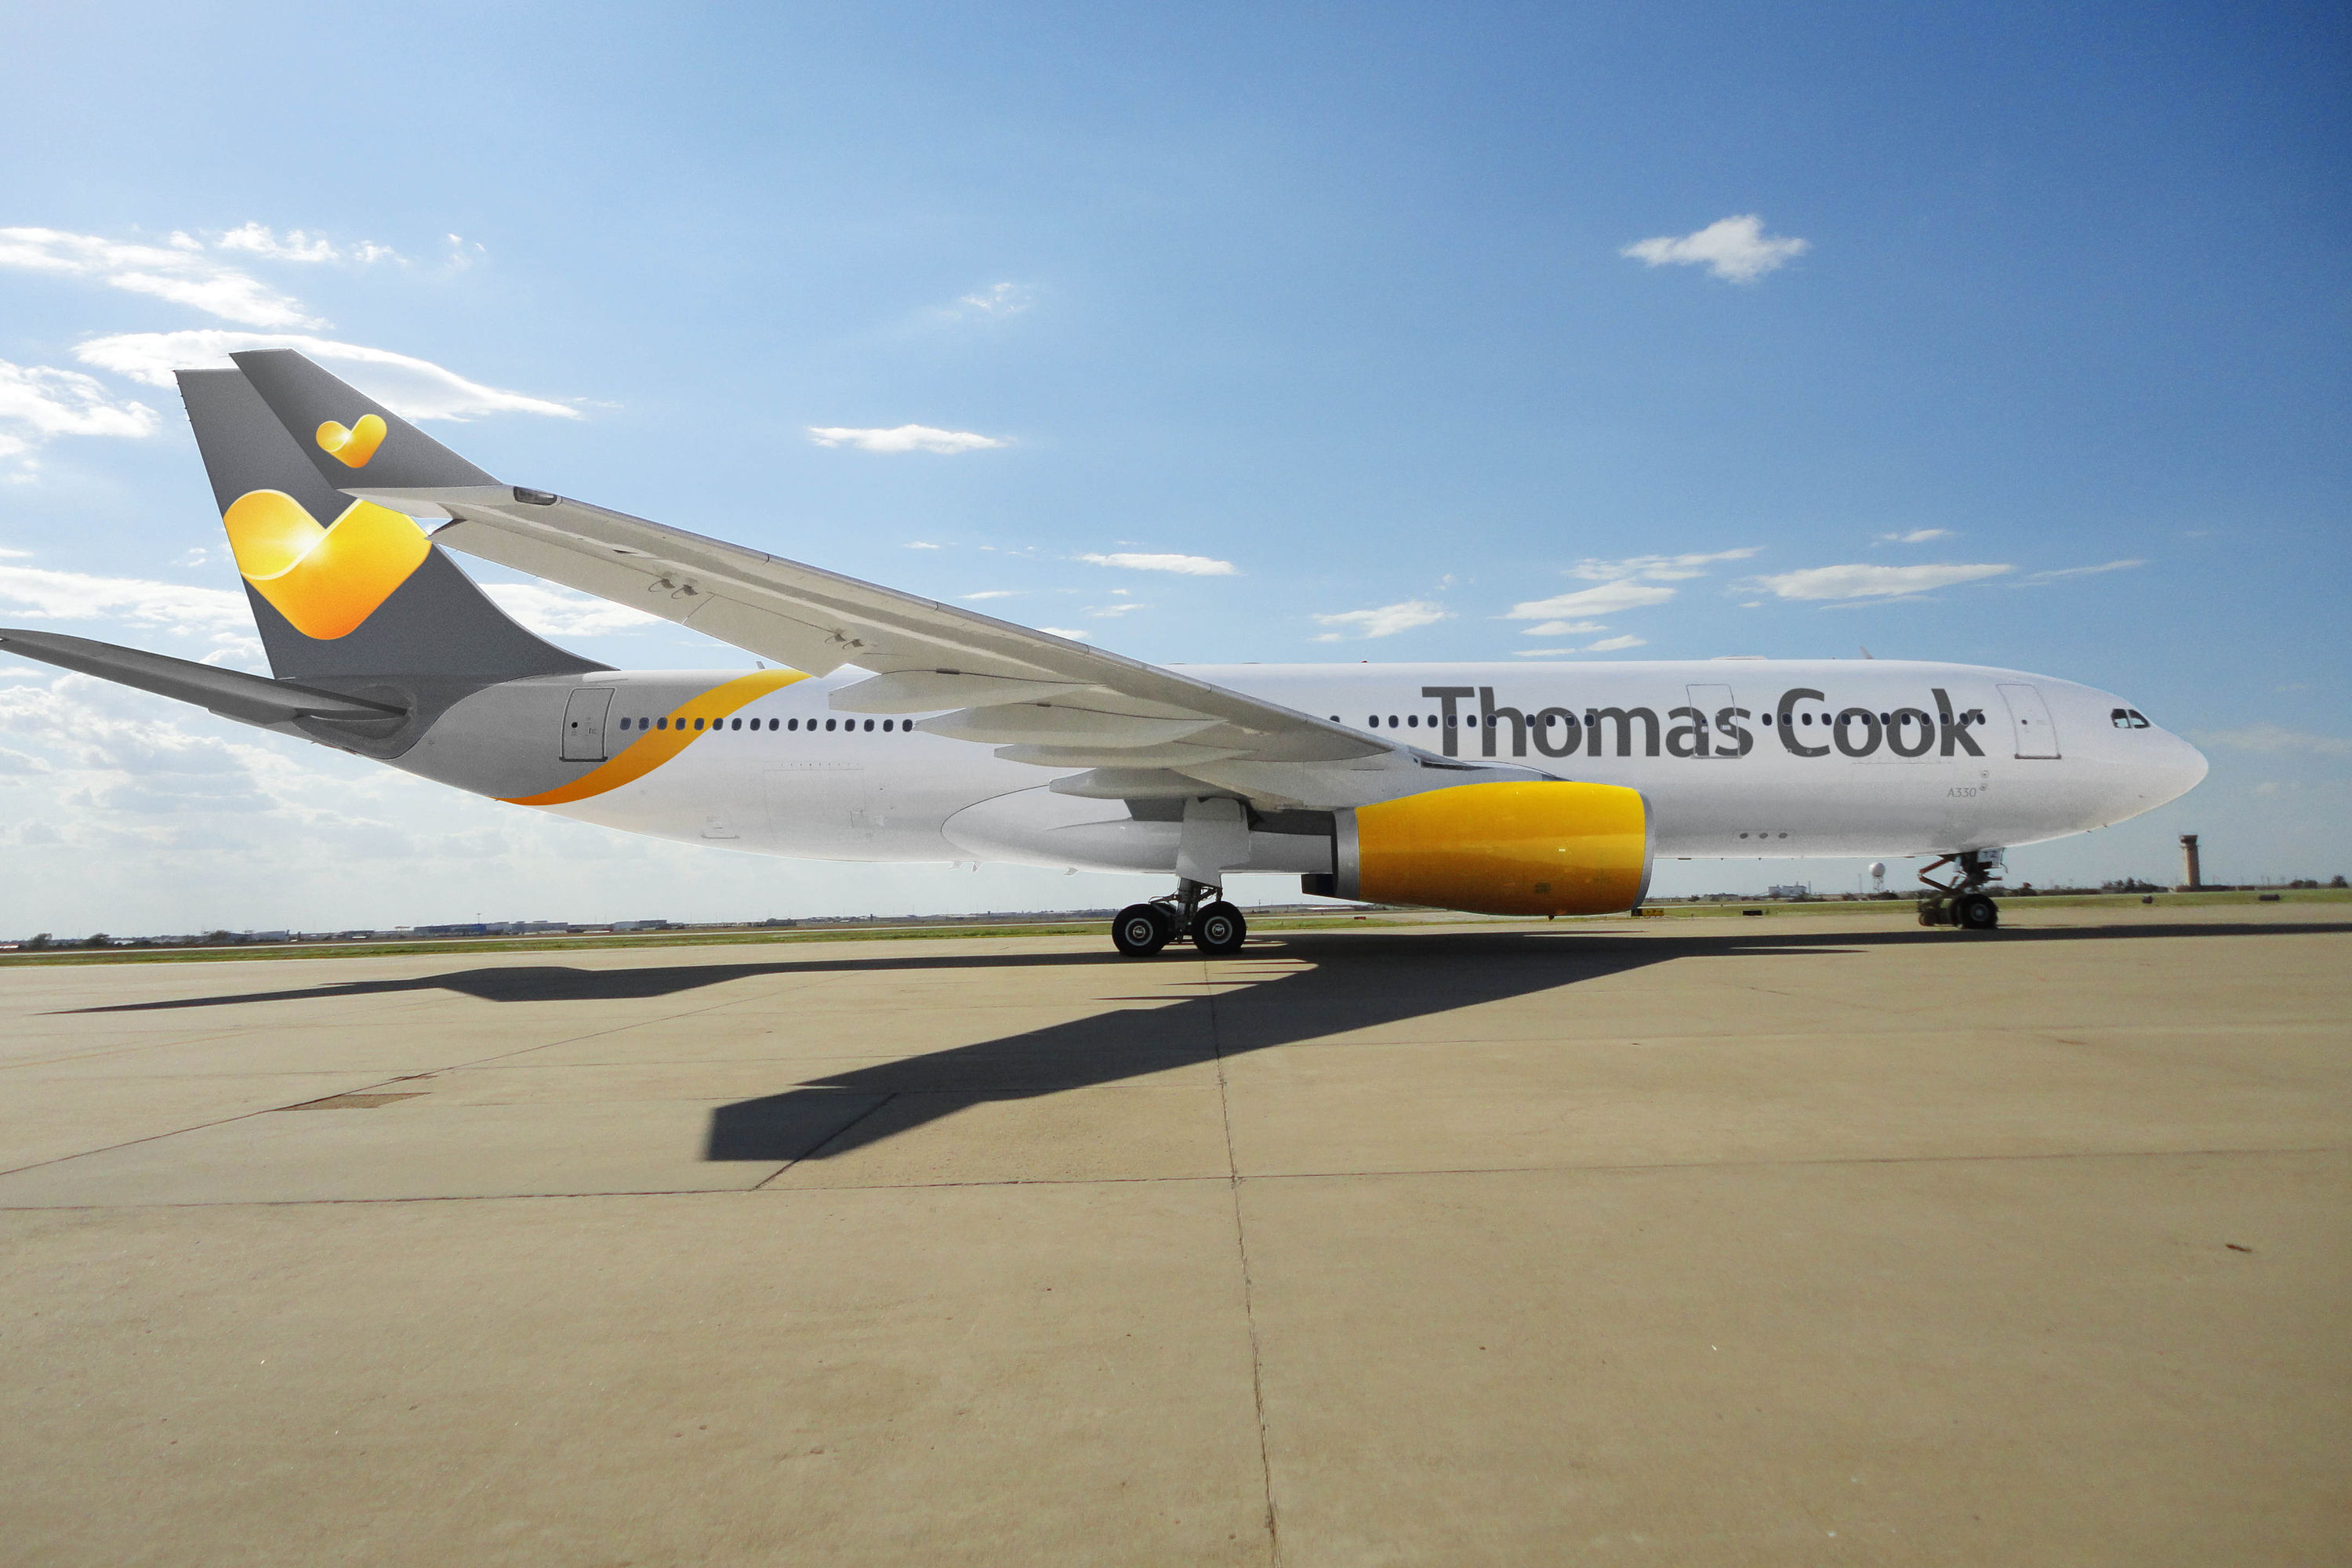 Thomas Cook Thomas Cook Airlines Condor Airlines English British Britain UK collapse cease trading bankrupt news creditors stranded Civil Aviation Authority CAA Thomas Cook and Son